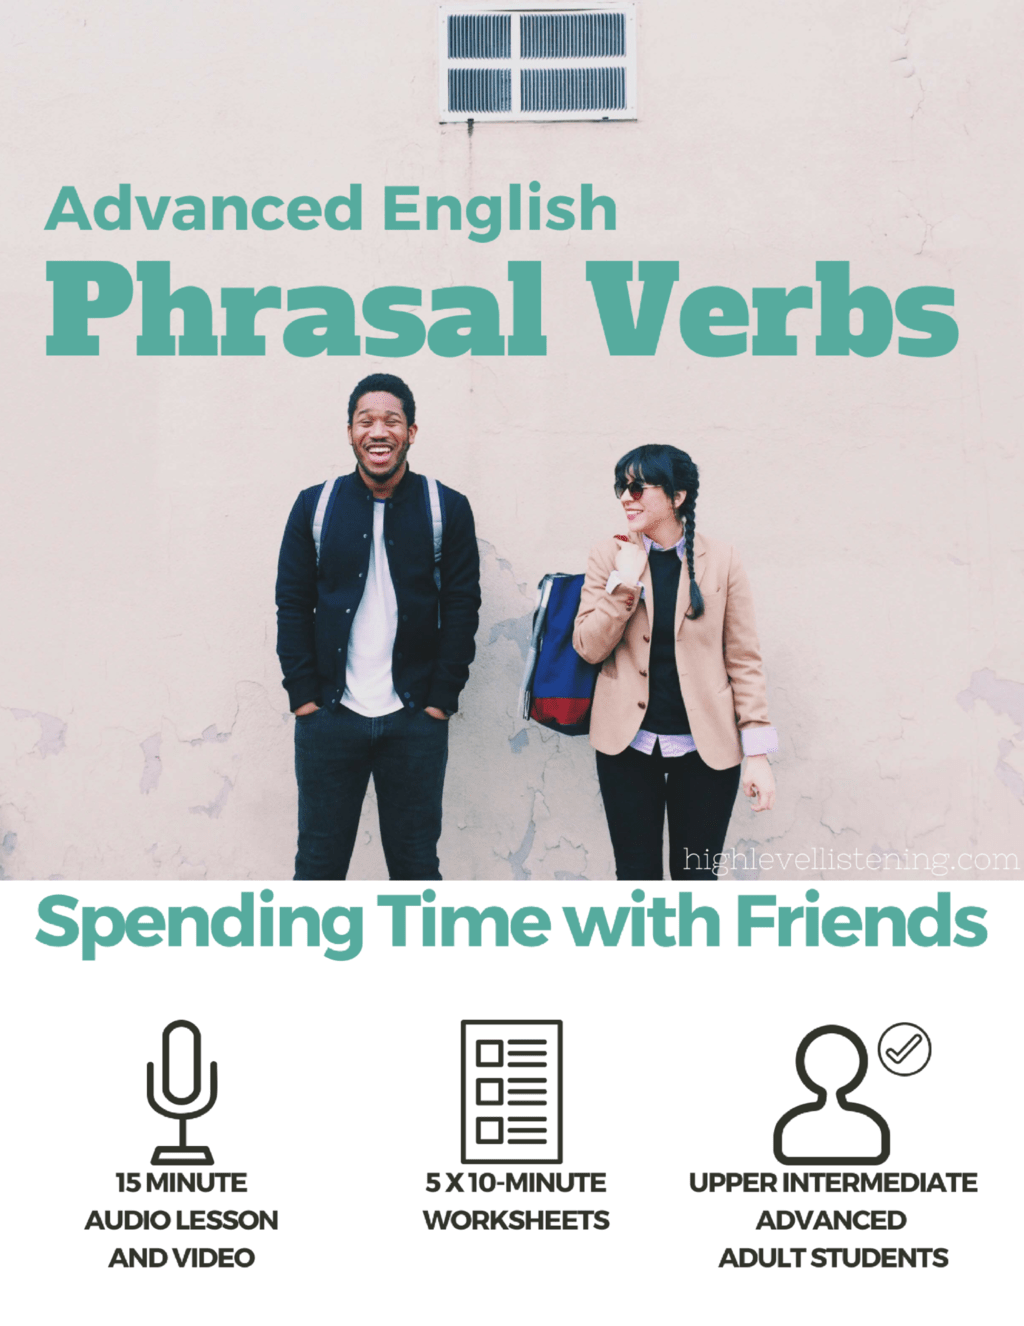 English Phrasal Verbs Spending Time With Friends